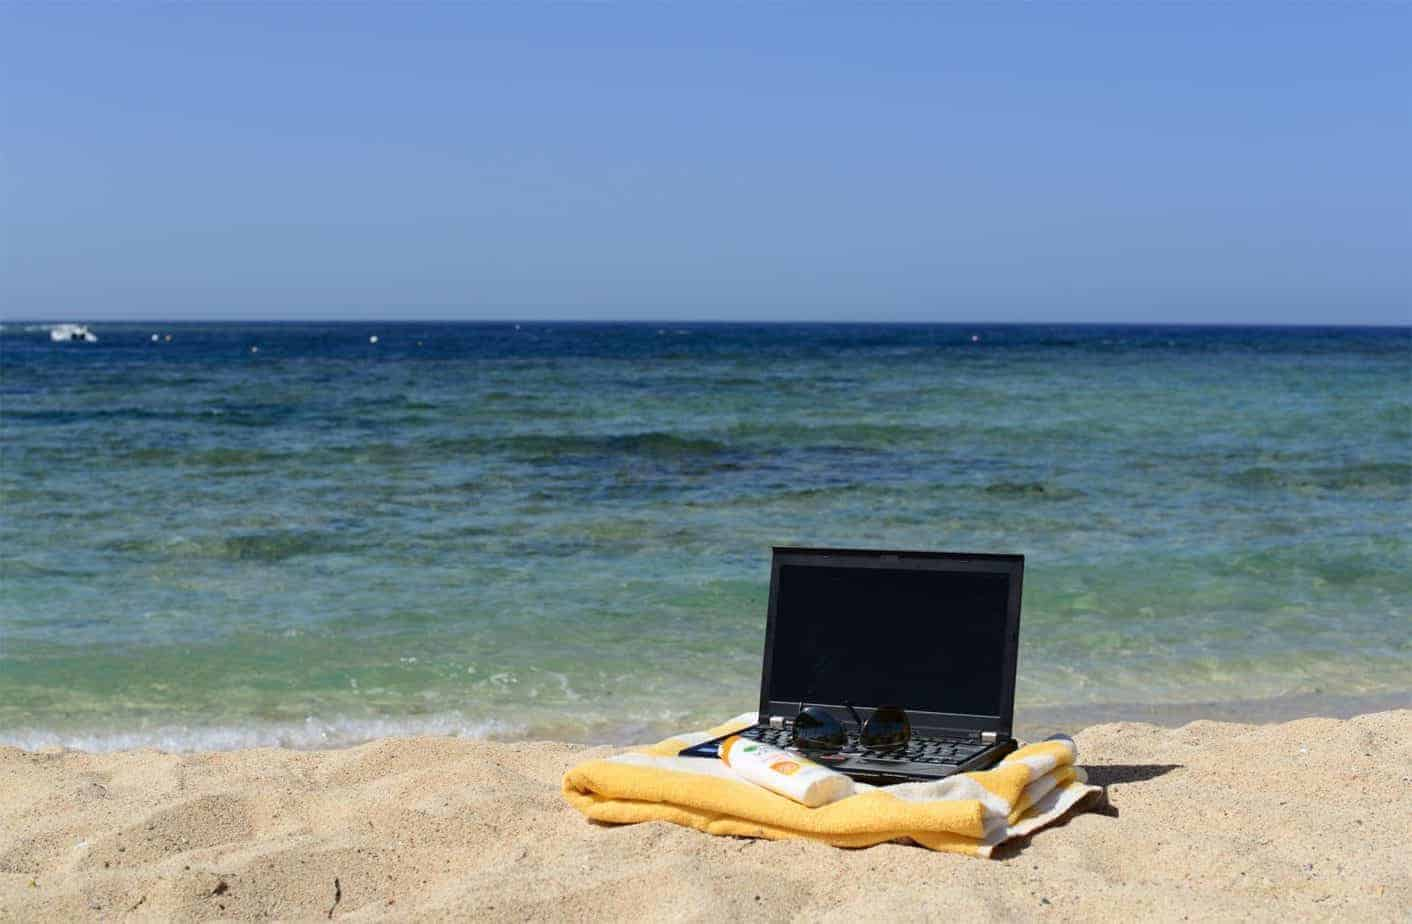 Laptop on a beach.